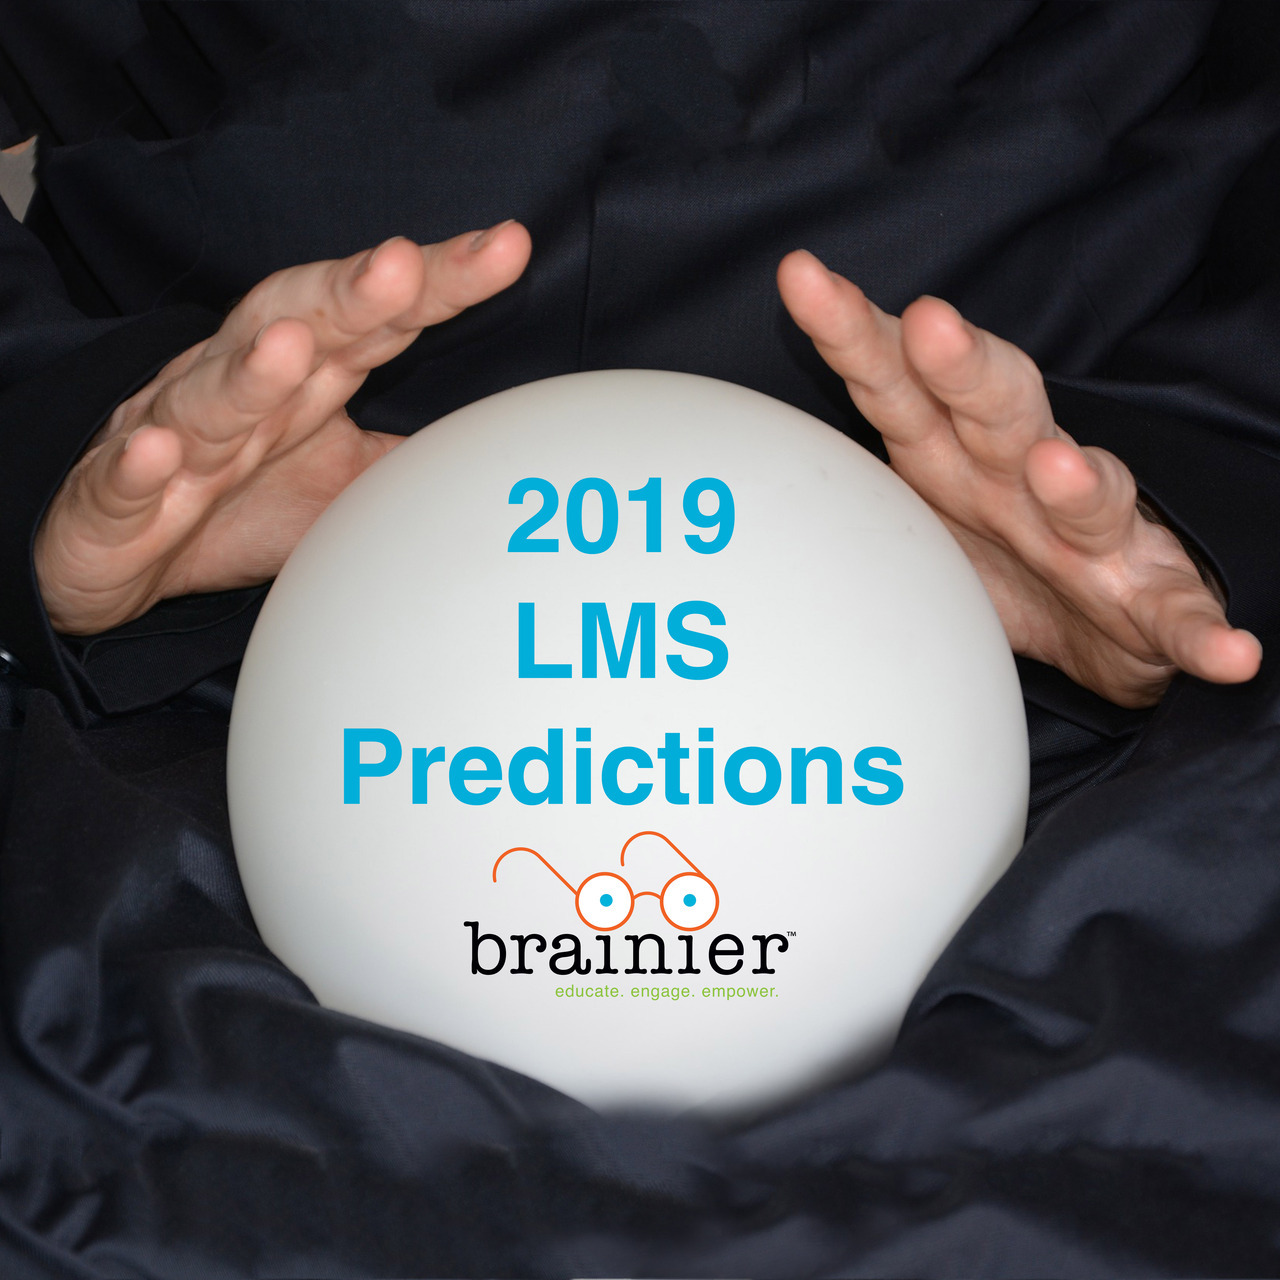 2019 LMS Predictions